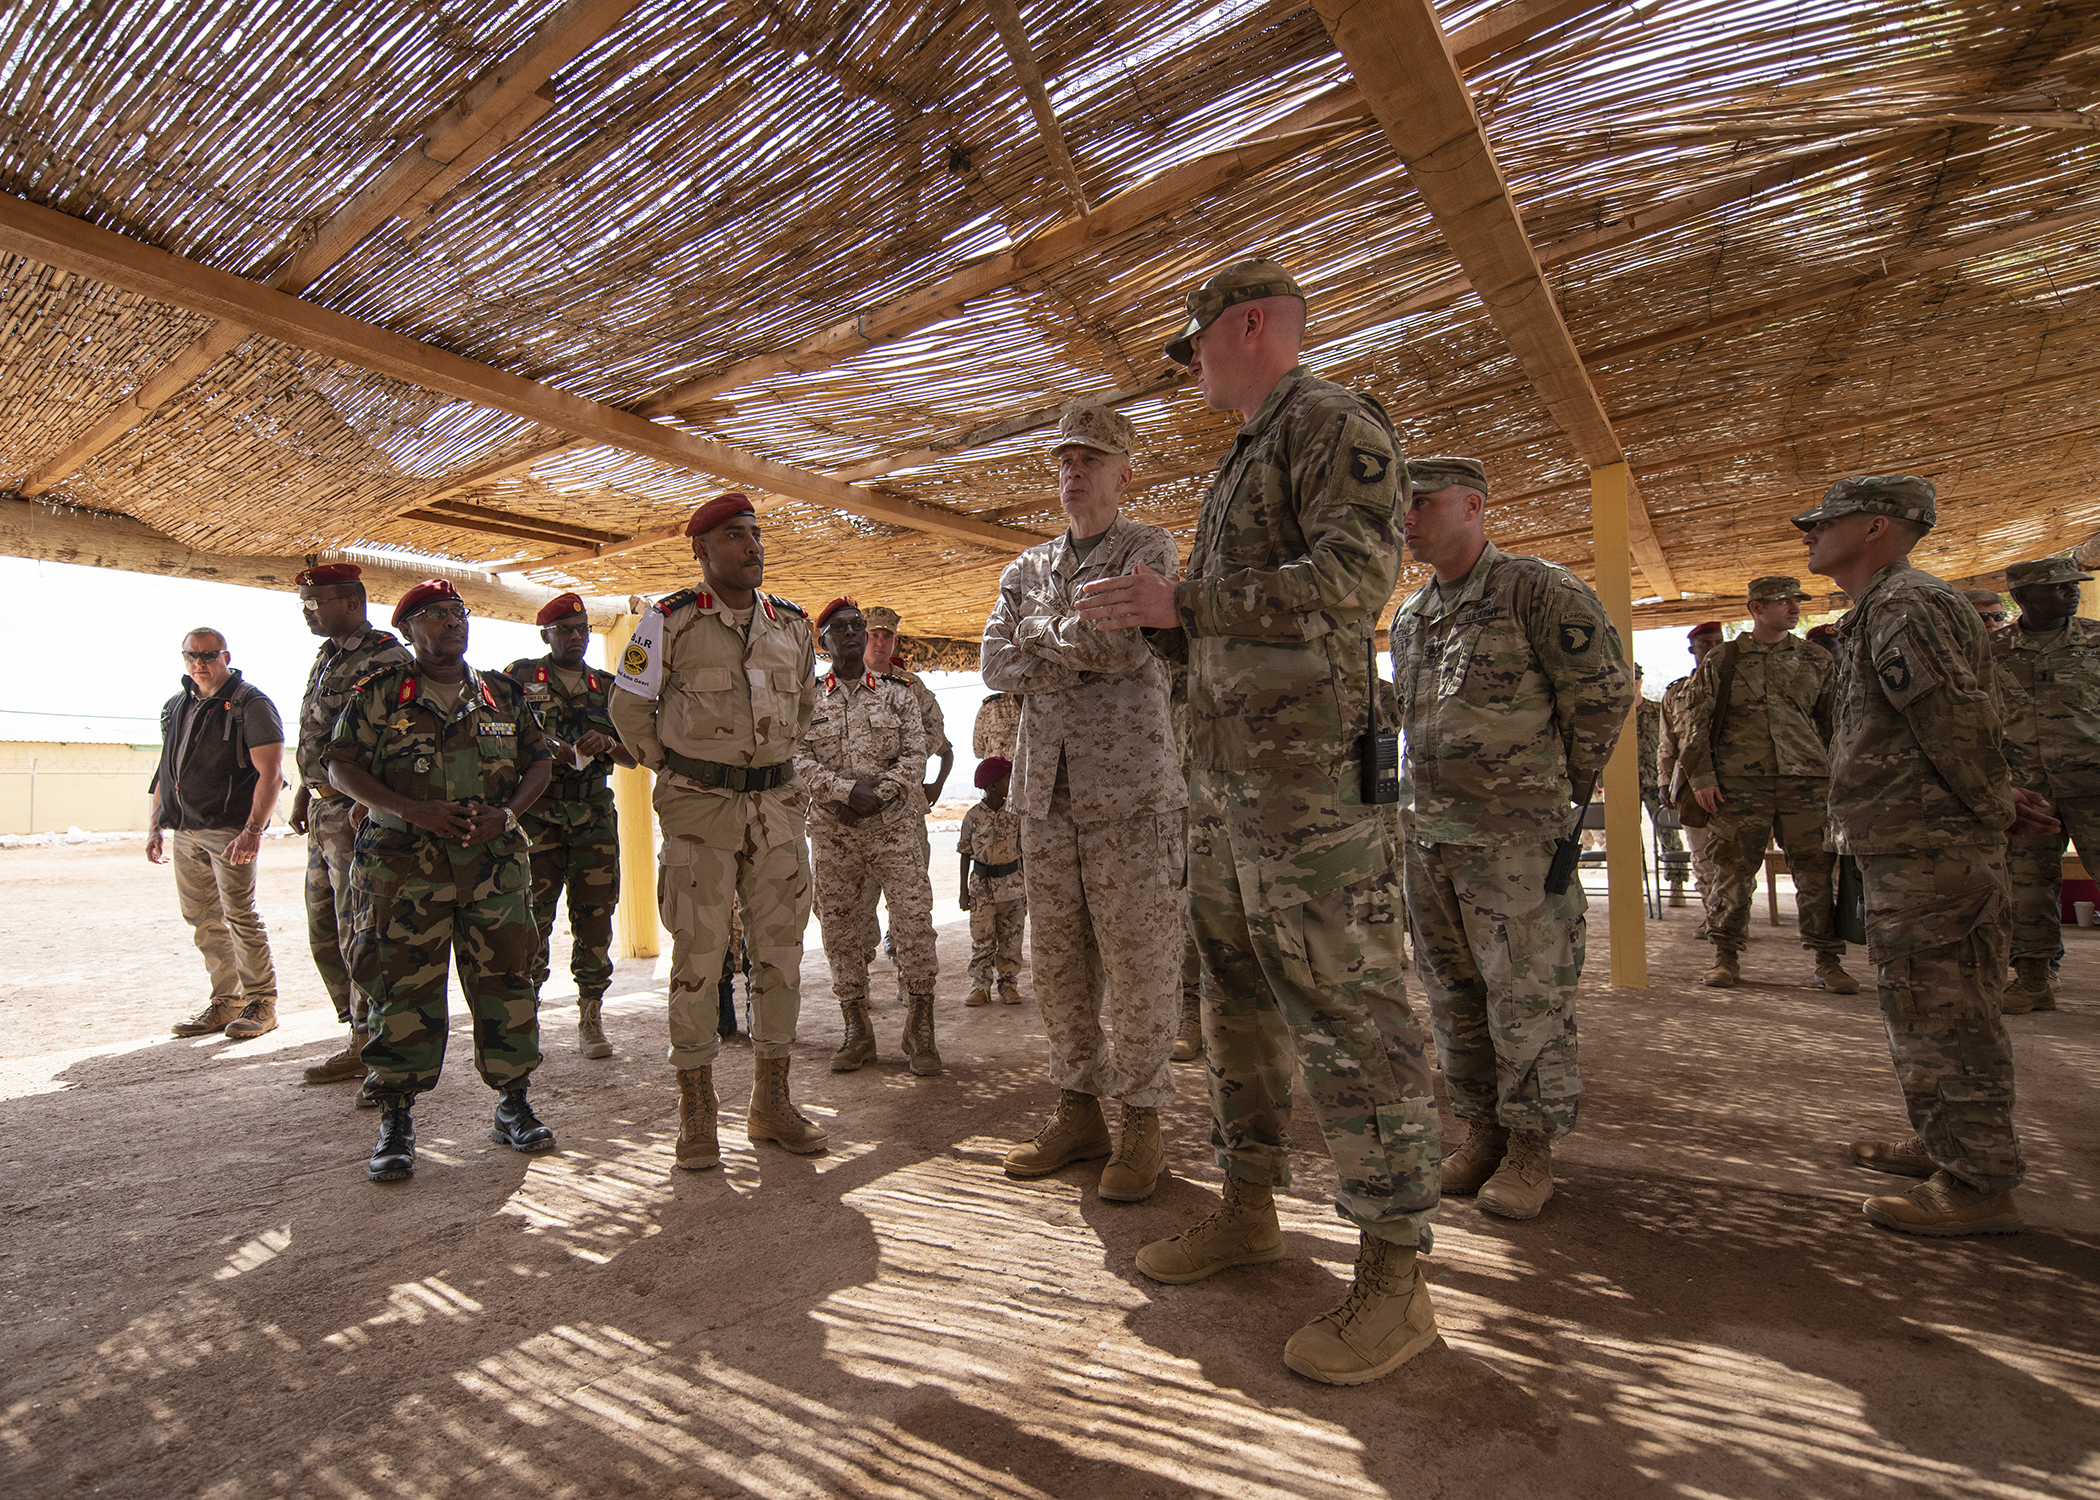 U.S. Marine Corps Gen. Thomas D. Waldhauser, center, commander of U.S. Africa Command, listens to a brief about partner training delivered by the officer in charge of NCO training for the Rapid Intervention Battalion (RIB), U.S. Army 1st Lt. Travis Holihan, Headquarters Company, 1-26 Infantry Battalion, 2nd Brigade Combat Team, 101st Airborne, assigned to Combined Joint Task Force-Horn of Africa, during a visit with senior Djiboutian officials, including Chief of General Staff of the Djibouti Armed Forces Gen. Zakaria Cheik Ibrahim, at a training base in Djibouti, March 21, 2019. While in Djibouti, Waldhauser observed the ongoing growth and development of the RIB, the Djiboutian army's elite military force, which the U.S. is in the process of training and equipping at the request of the Djiboutian government. (U.S. Air Force photo by Tech. Sgt. Shawn Nickel)